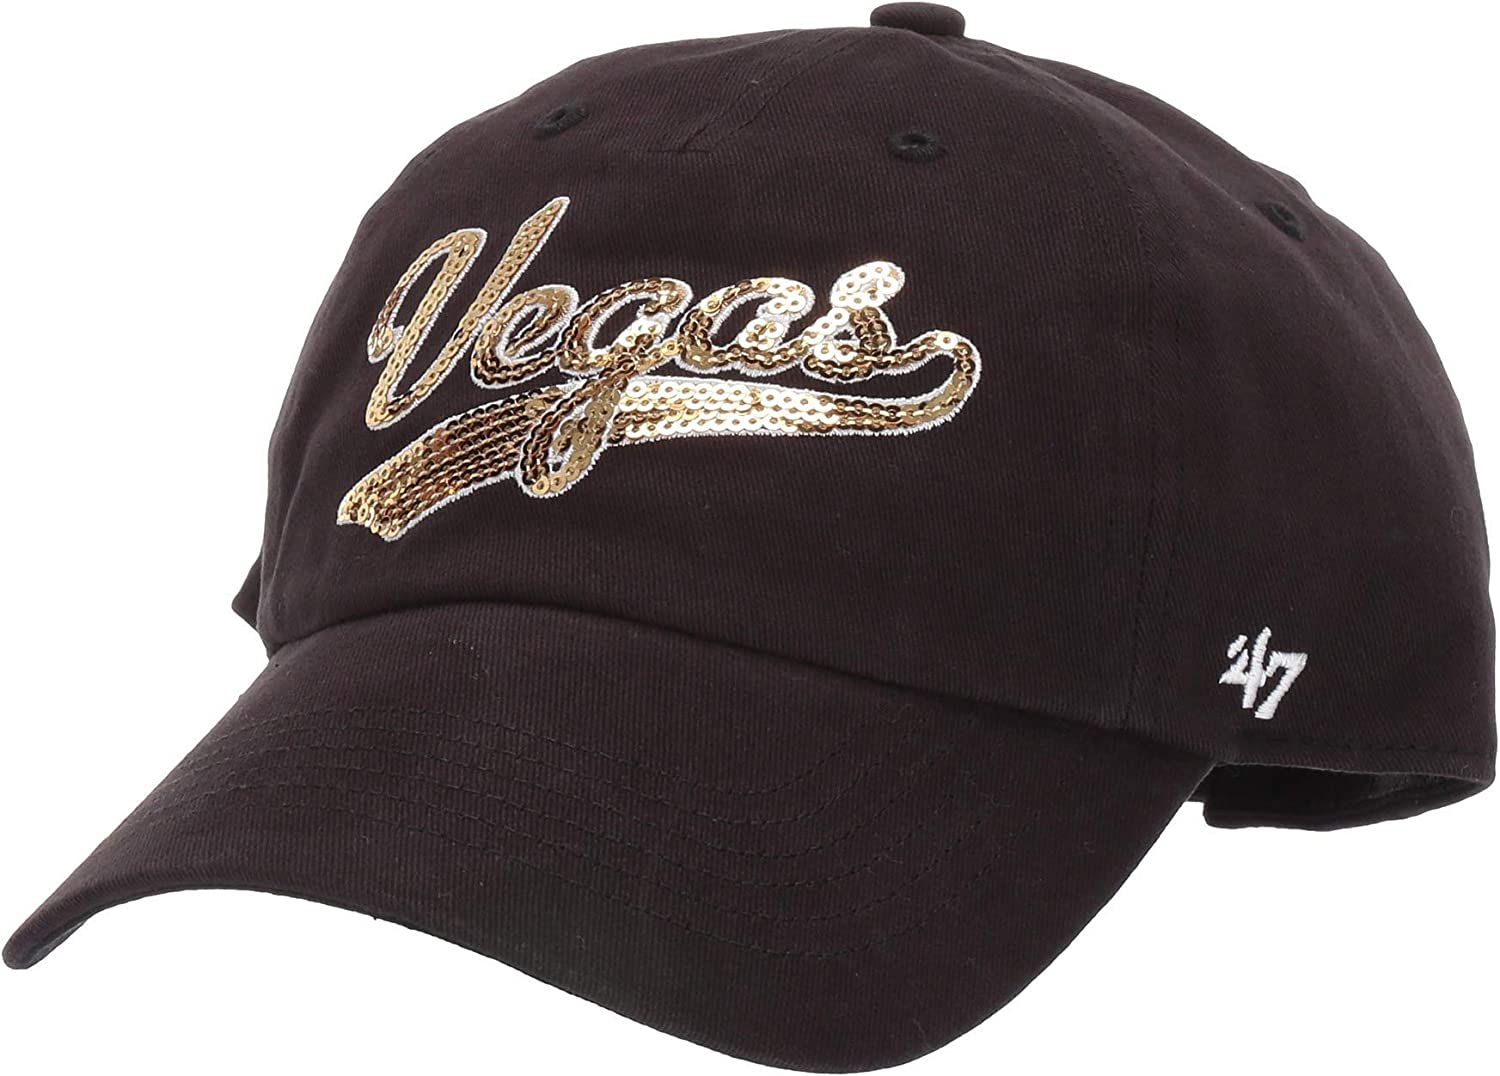 '47 NHL Vegas Golden Knights Sparkle Swoop 47 Clean Up